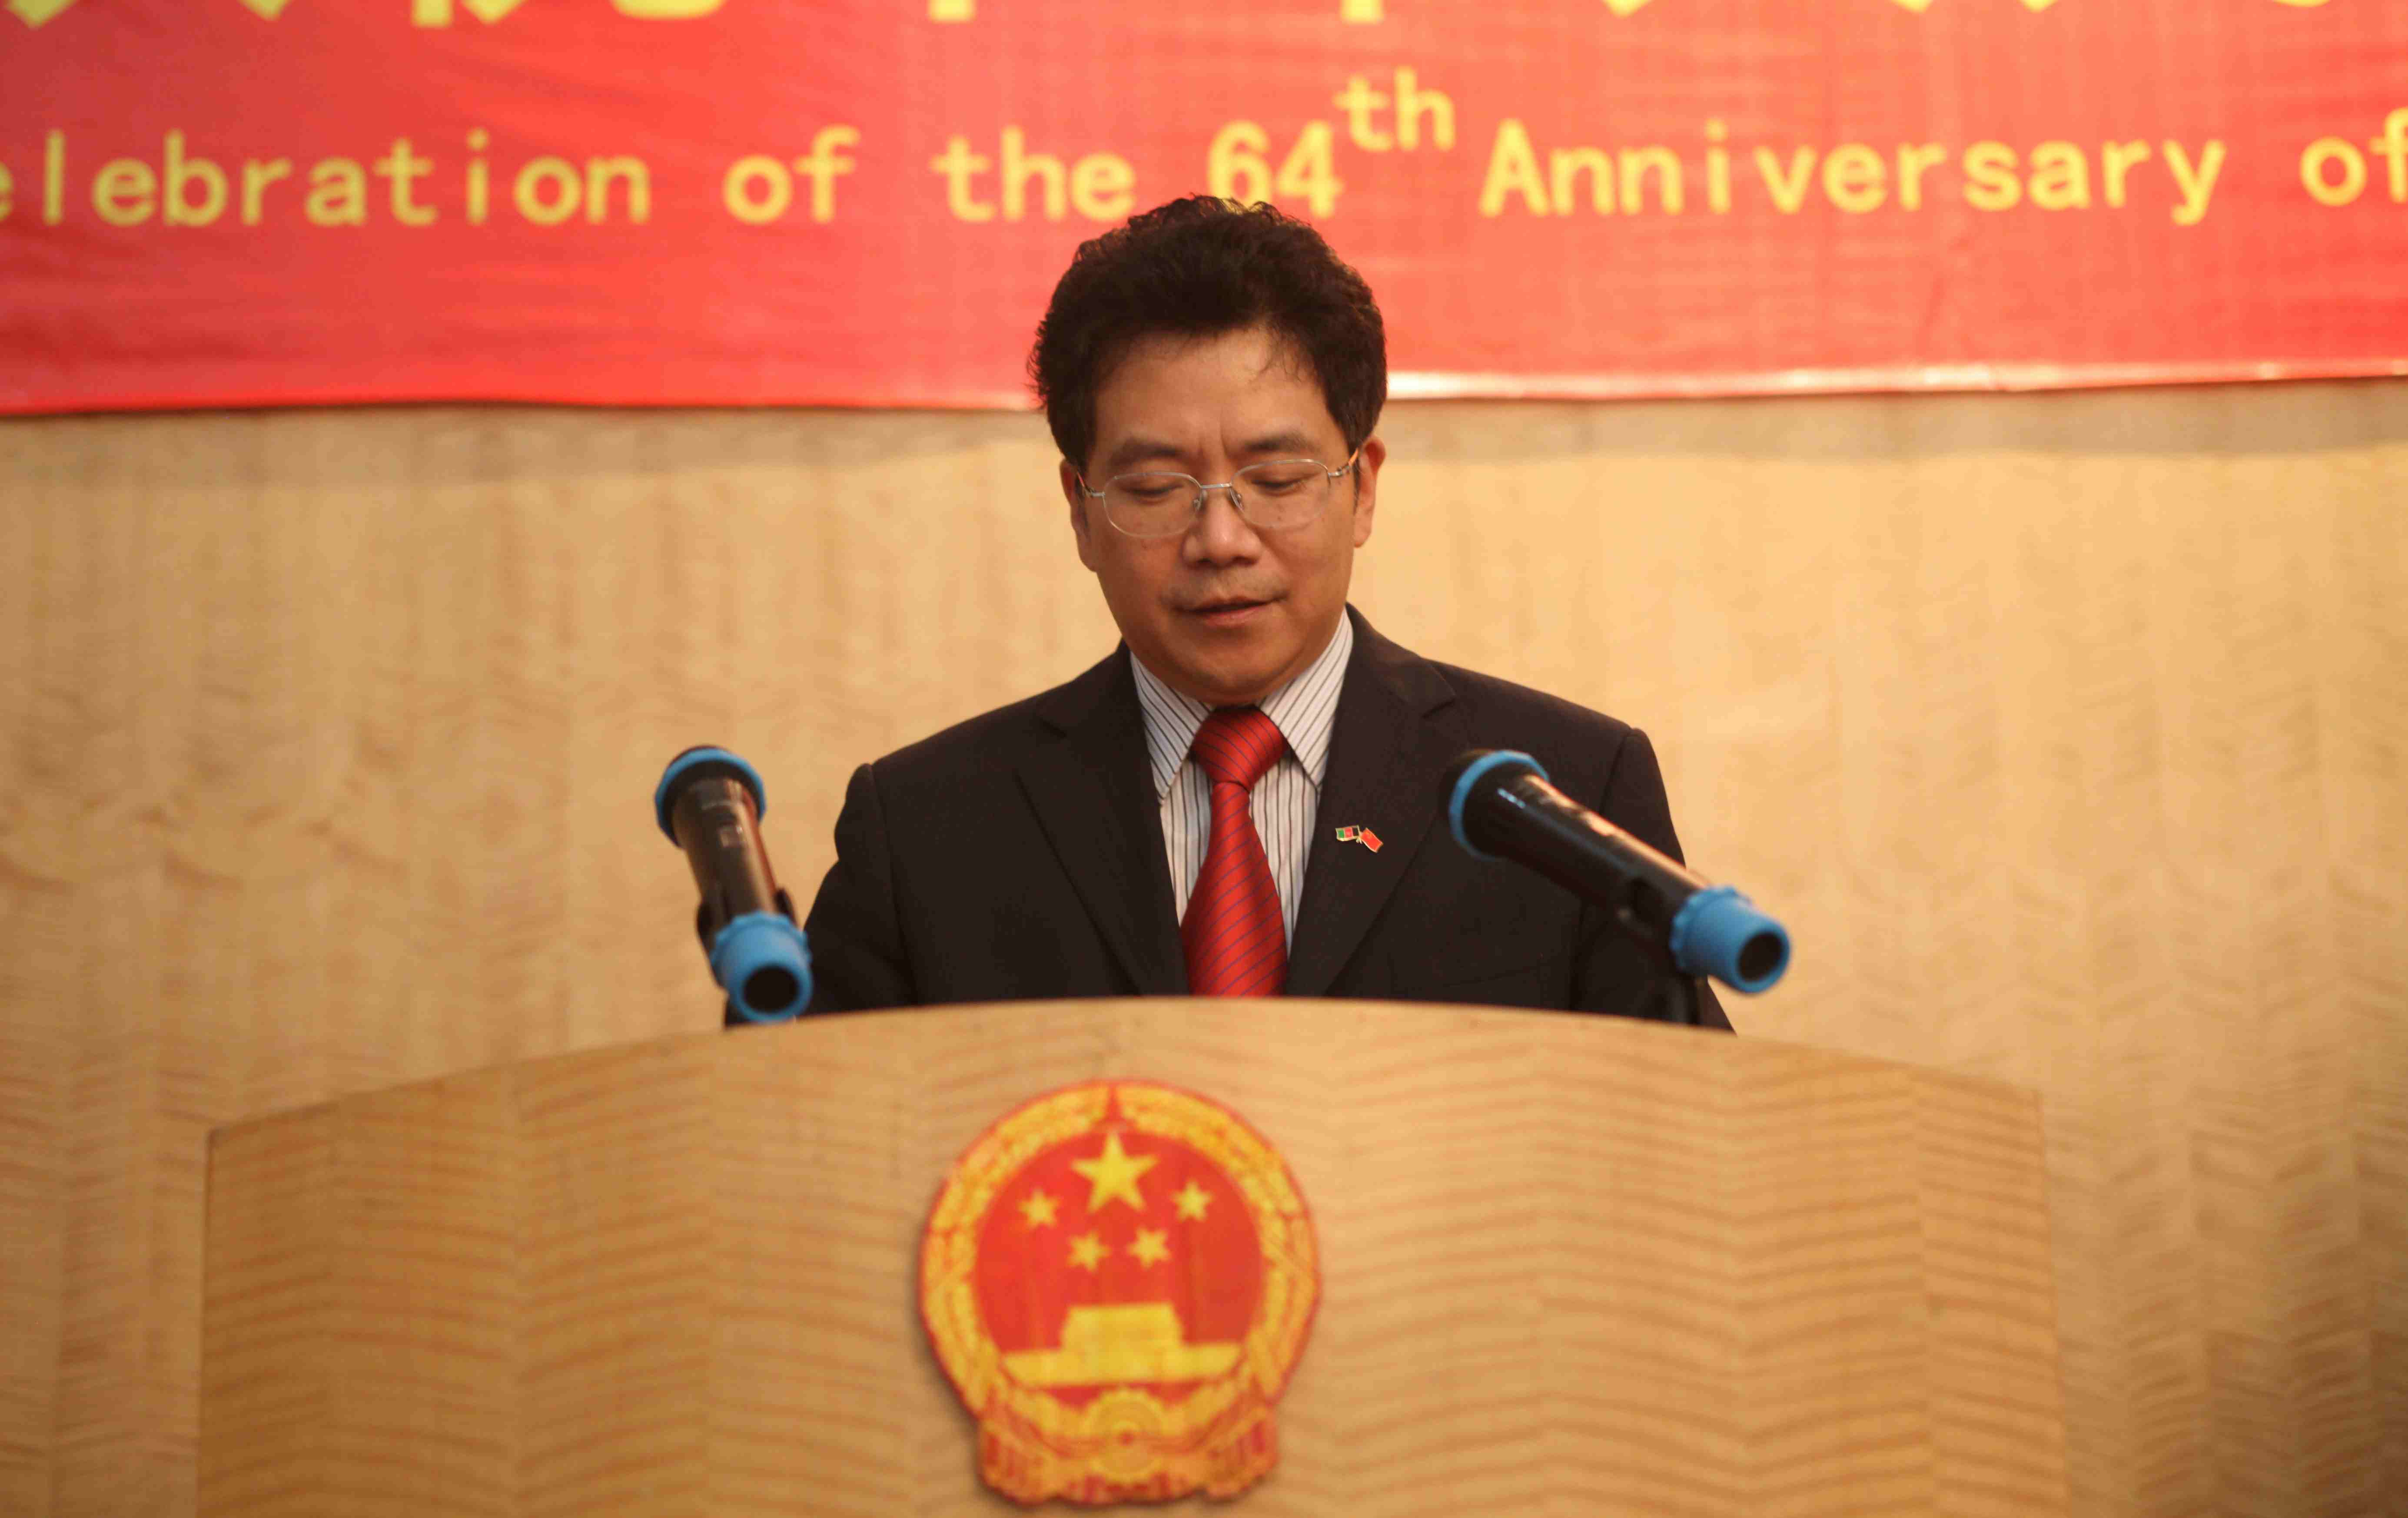 Remarks by H.E. Mr. Deng Xijun, Ambassador of the People's Republic of China  to Afghanistan at the Reception in Celebration of the 64th Anniversary of  the ...